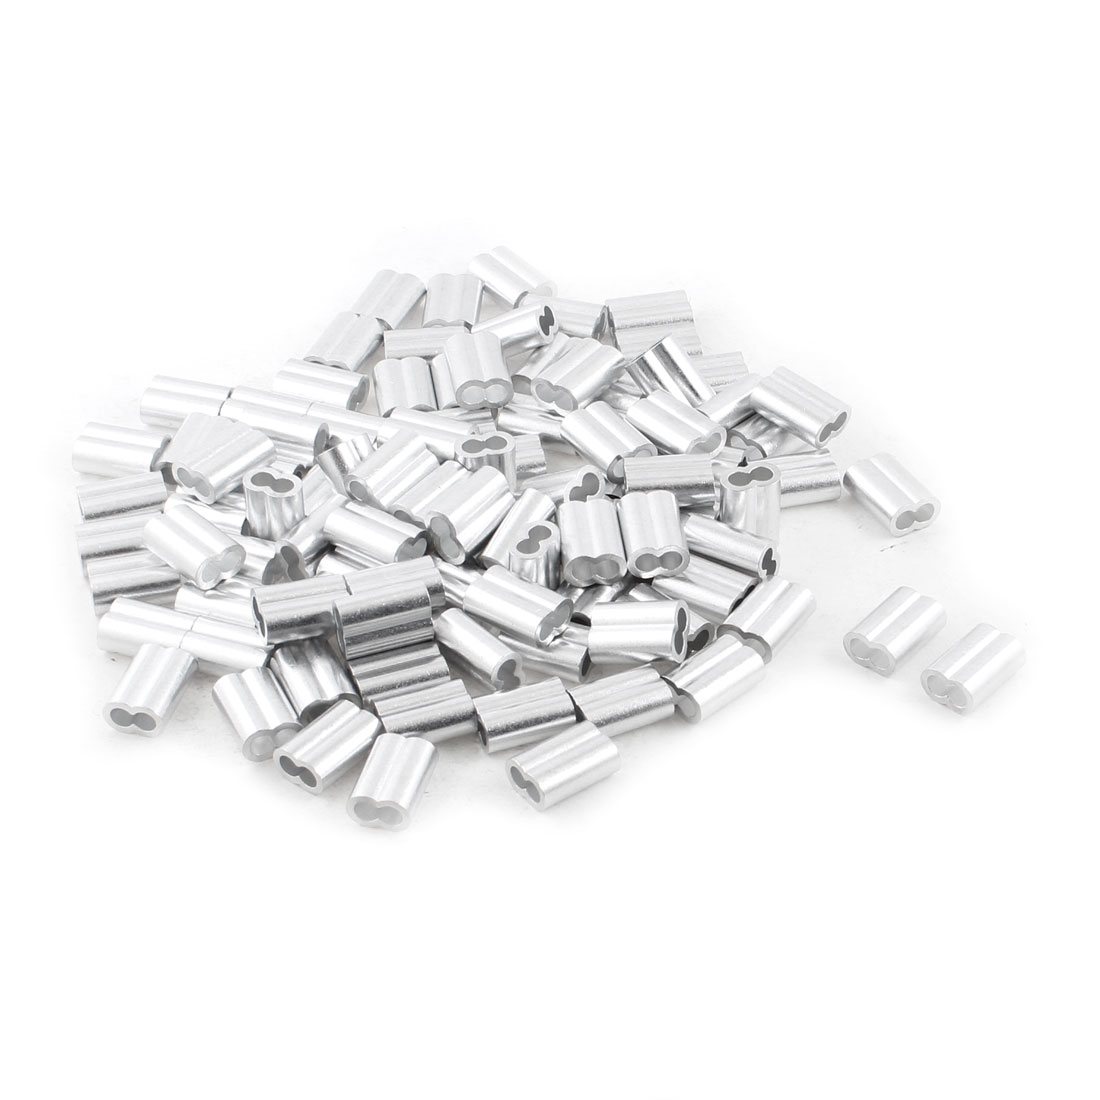 100Pcs Silver Tone Aluminum Ferrules Sleeves for 6mm Steel Wire Rope